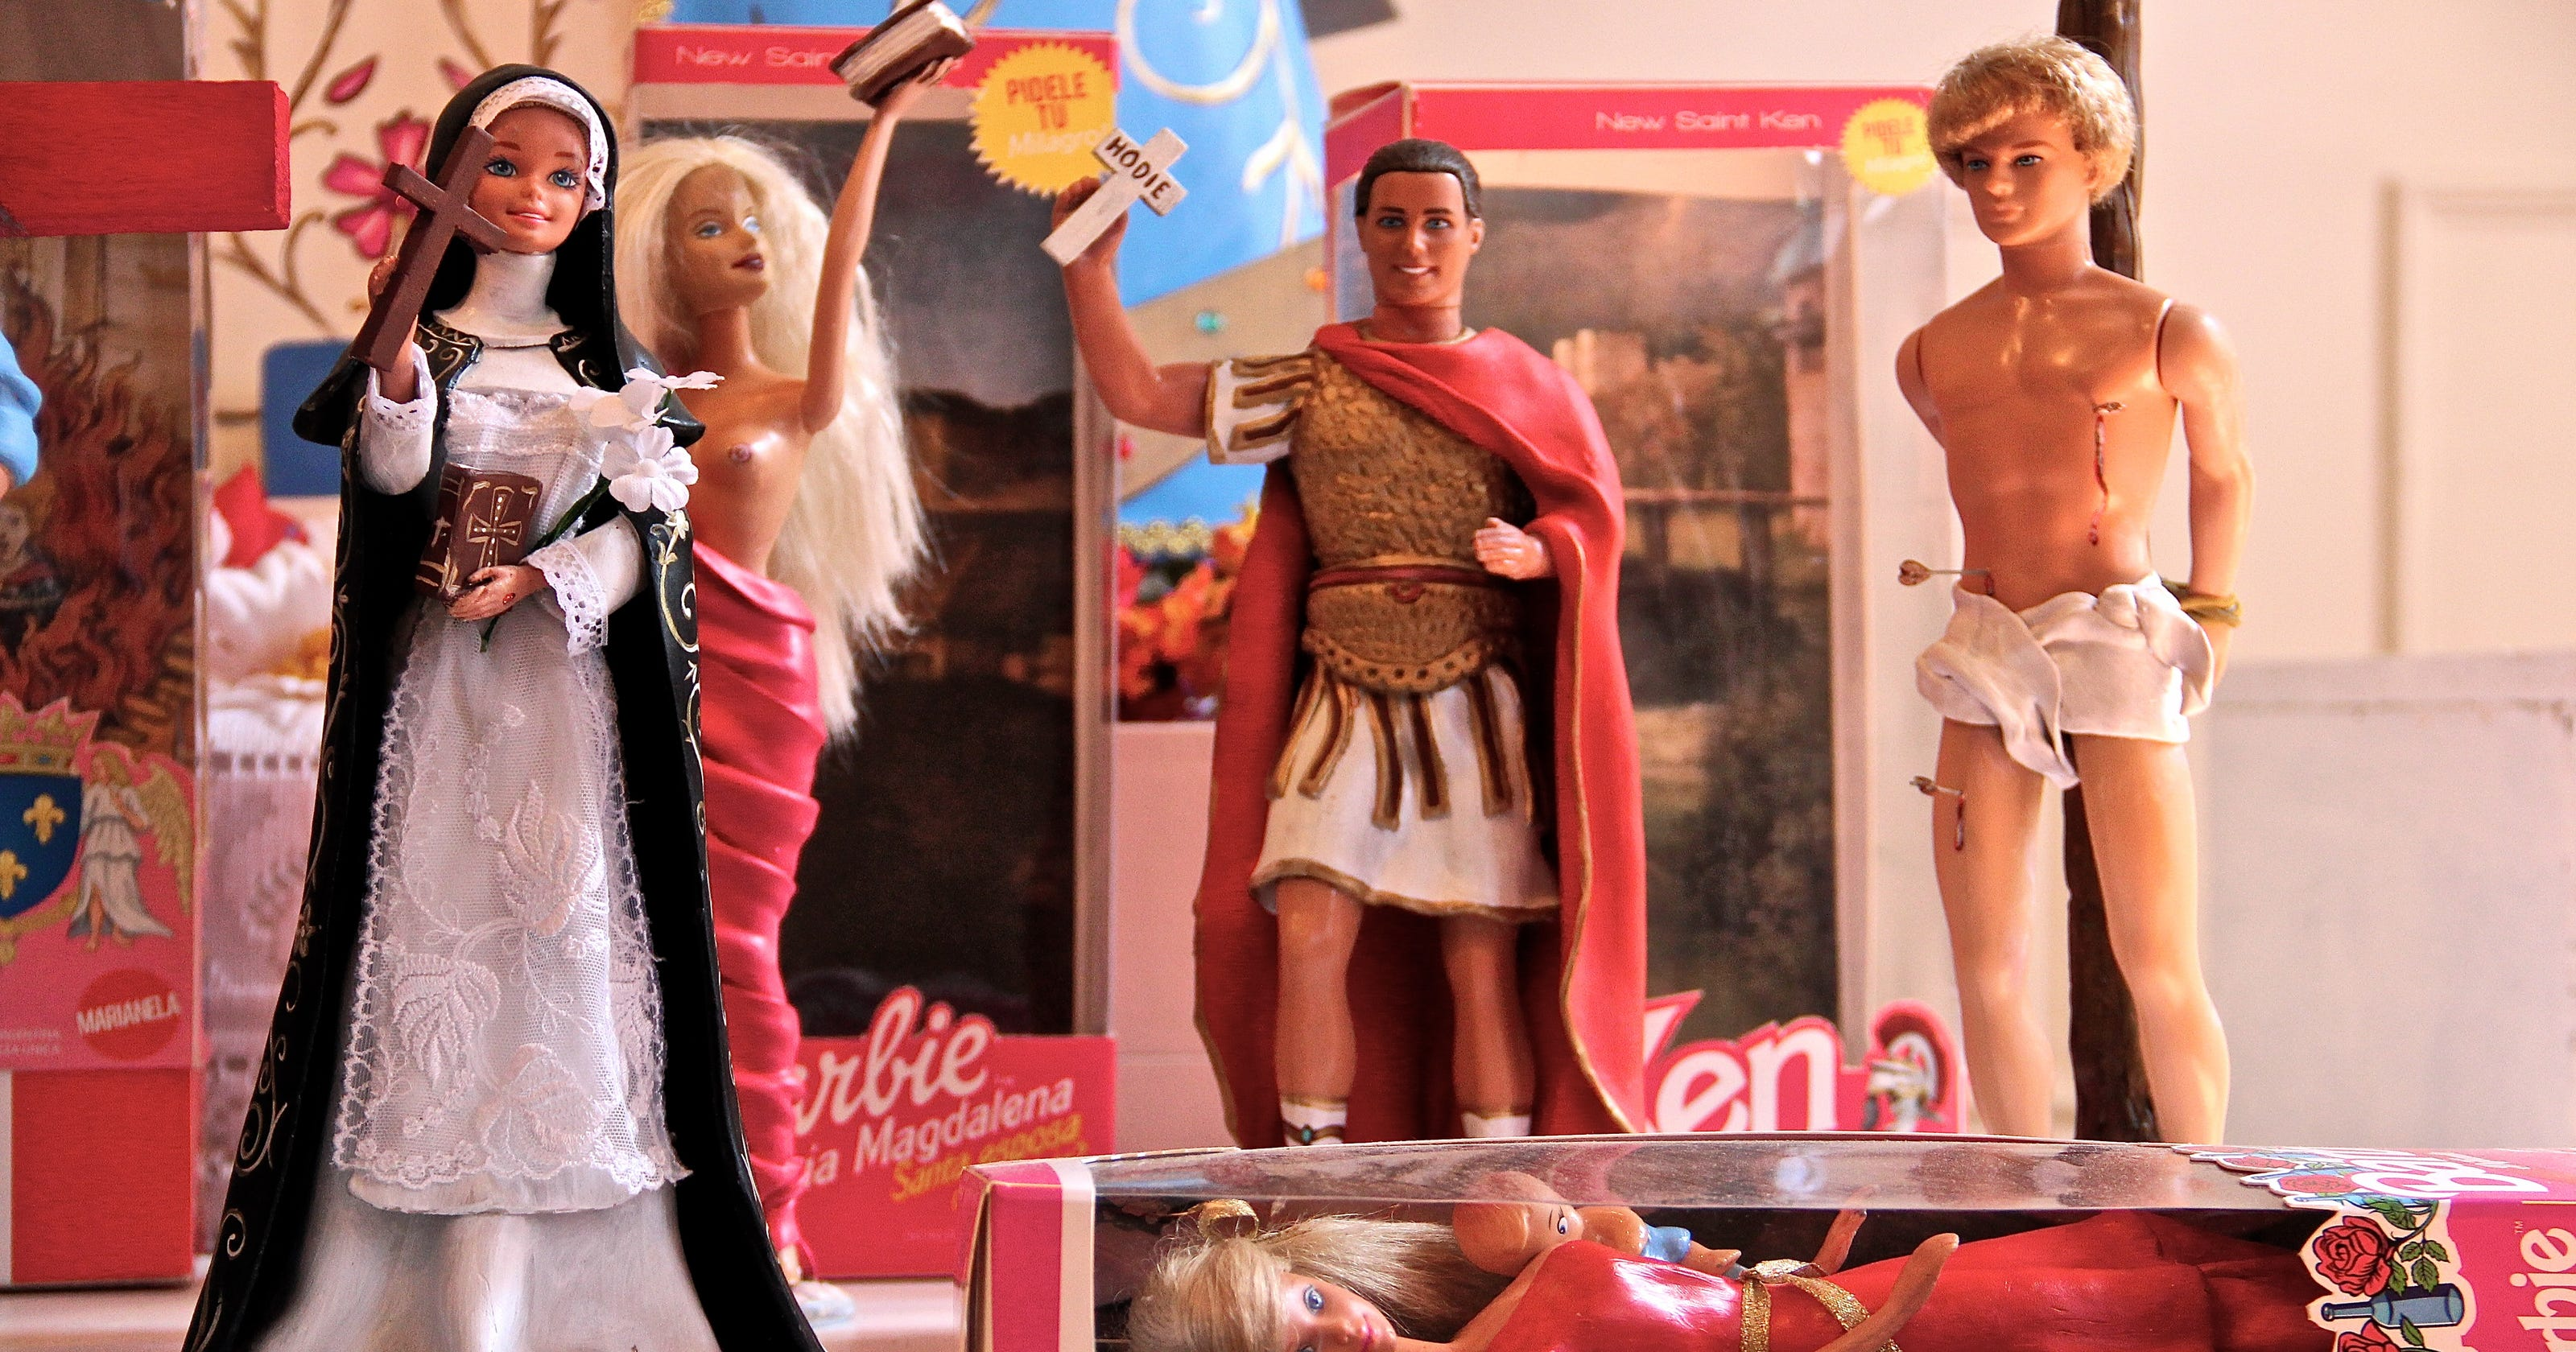 Ken stands in as martyred jesus barbie as virgin mary - Image barbie et ken ...